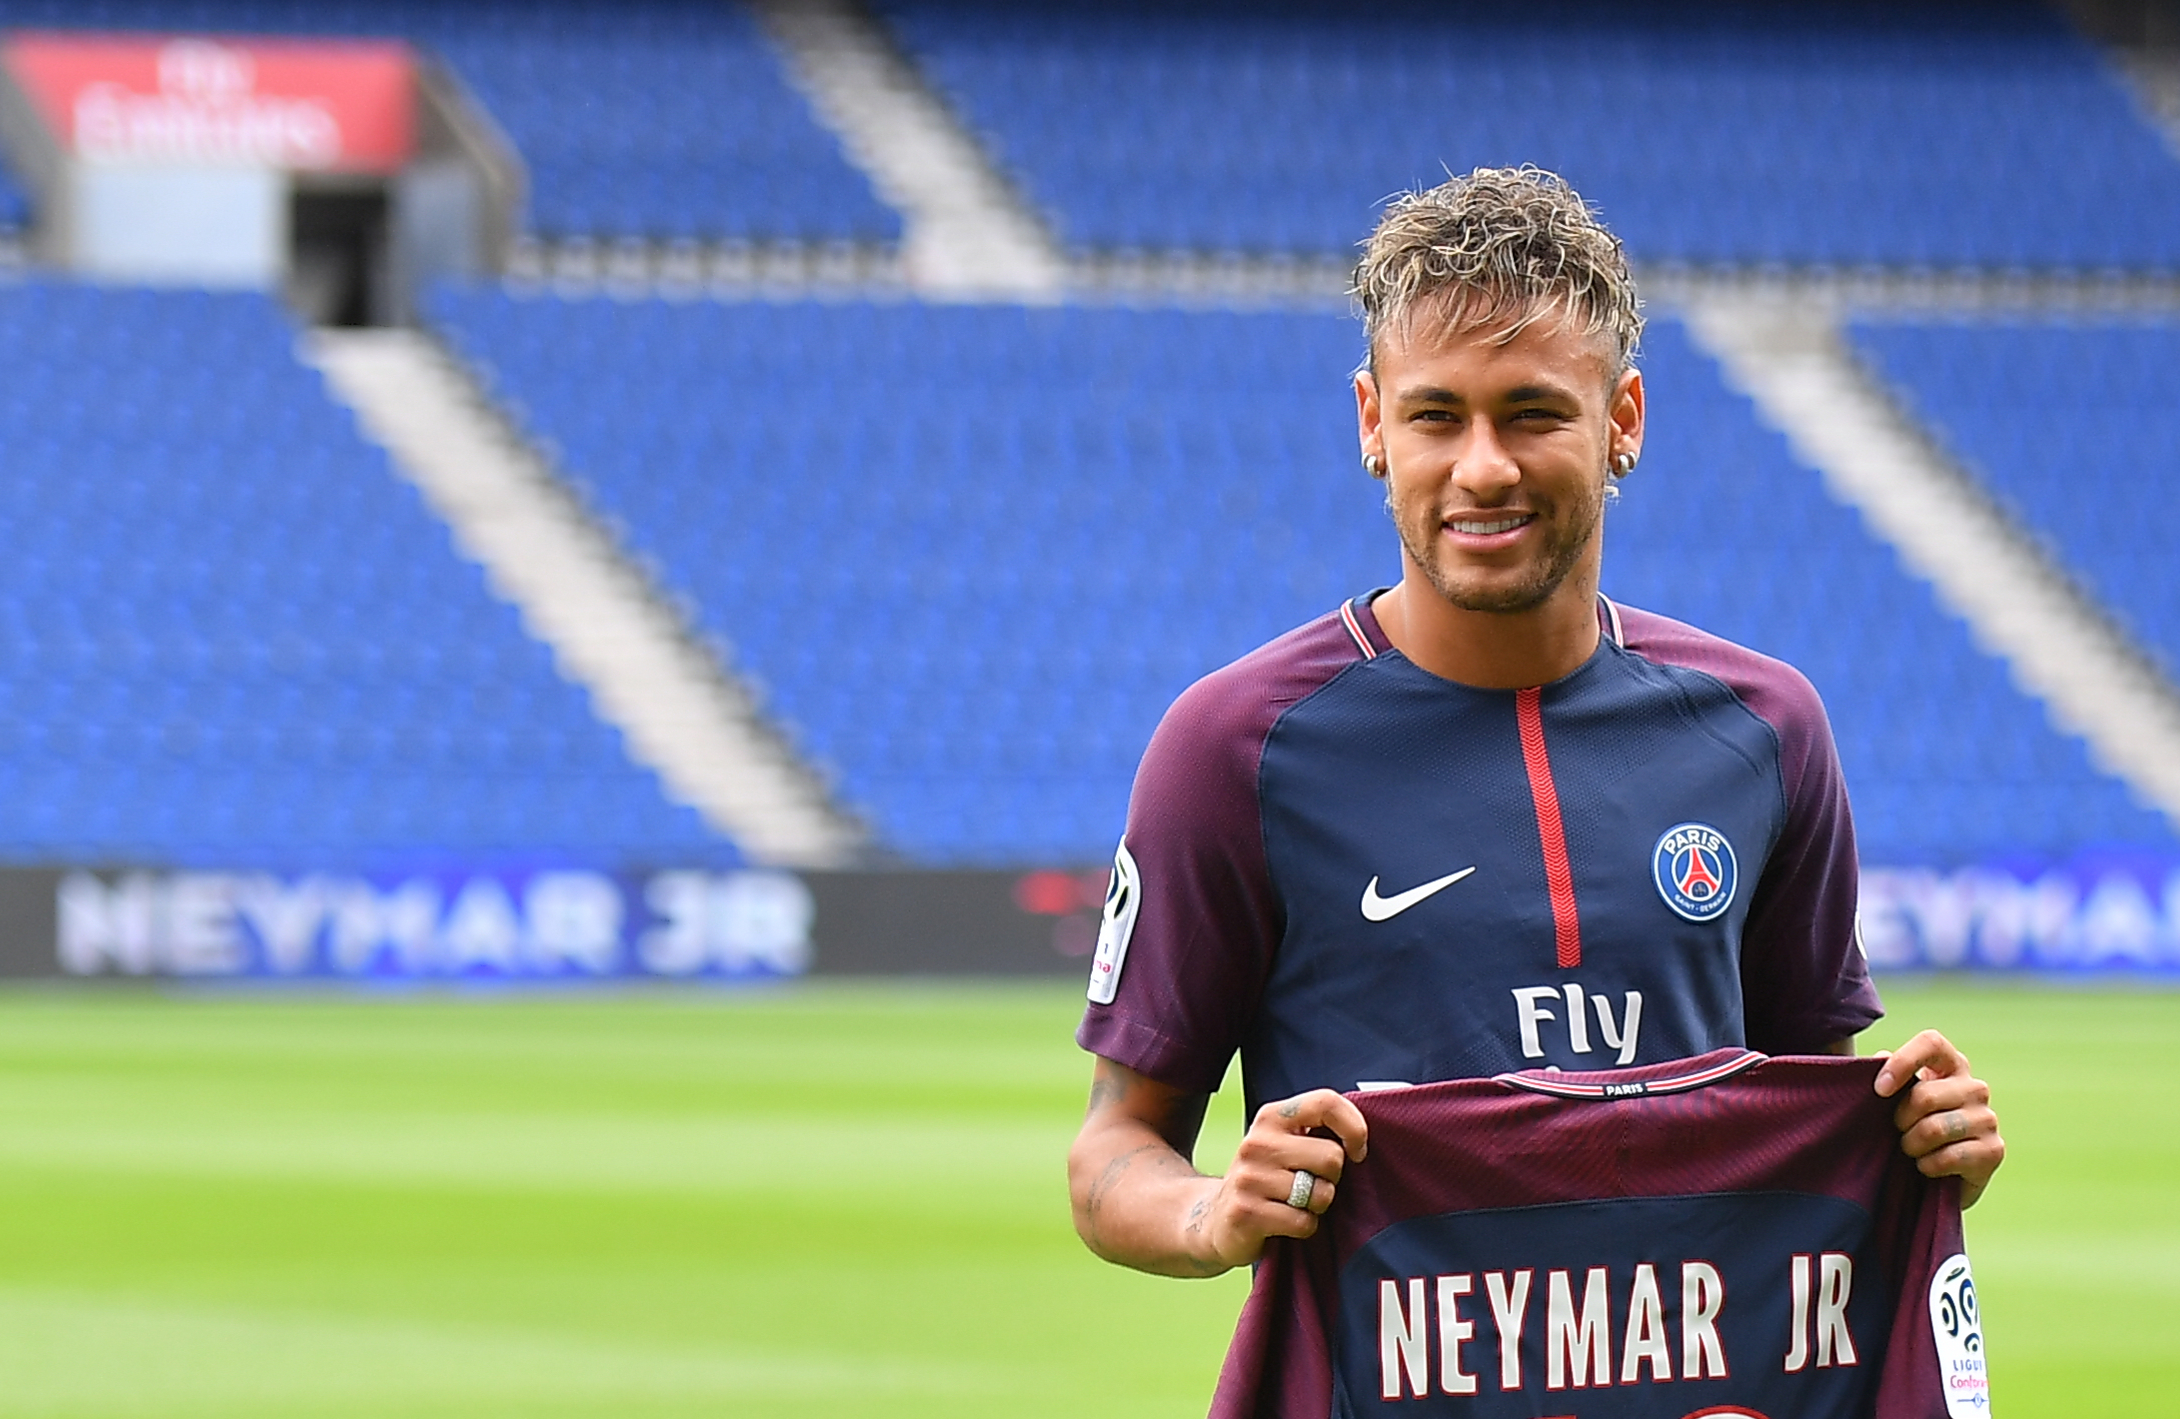 Neymar at his official PSG unveiling (Credit: PA)